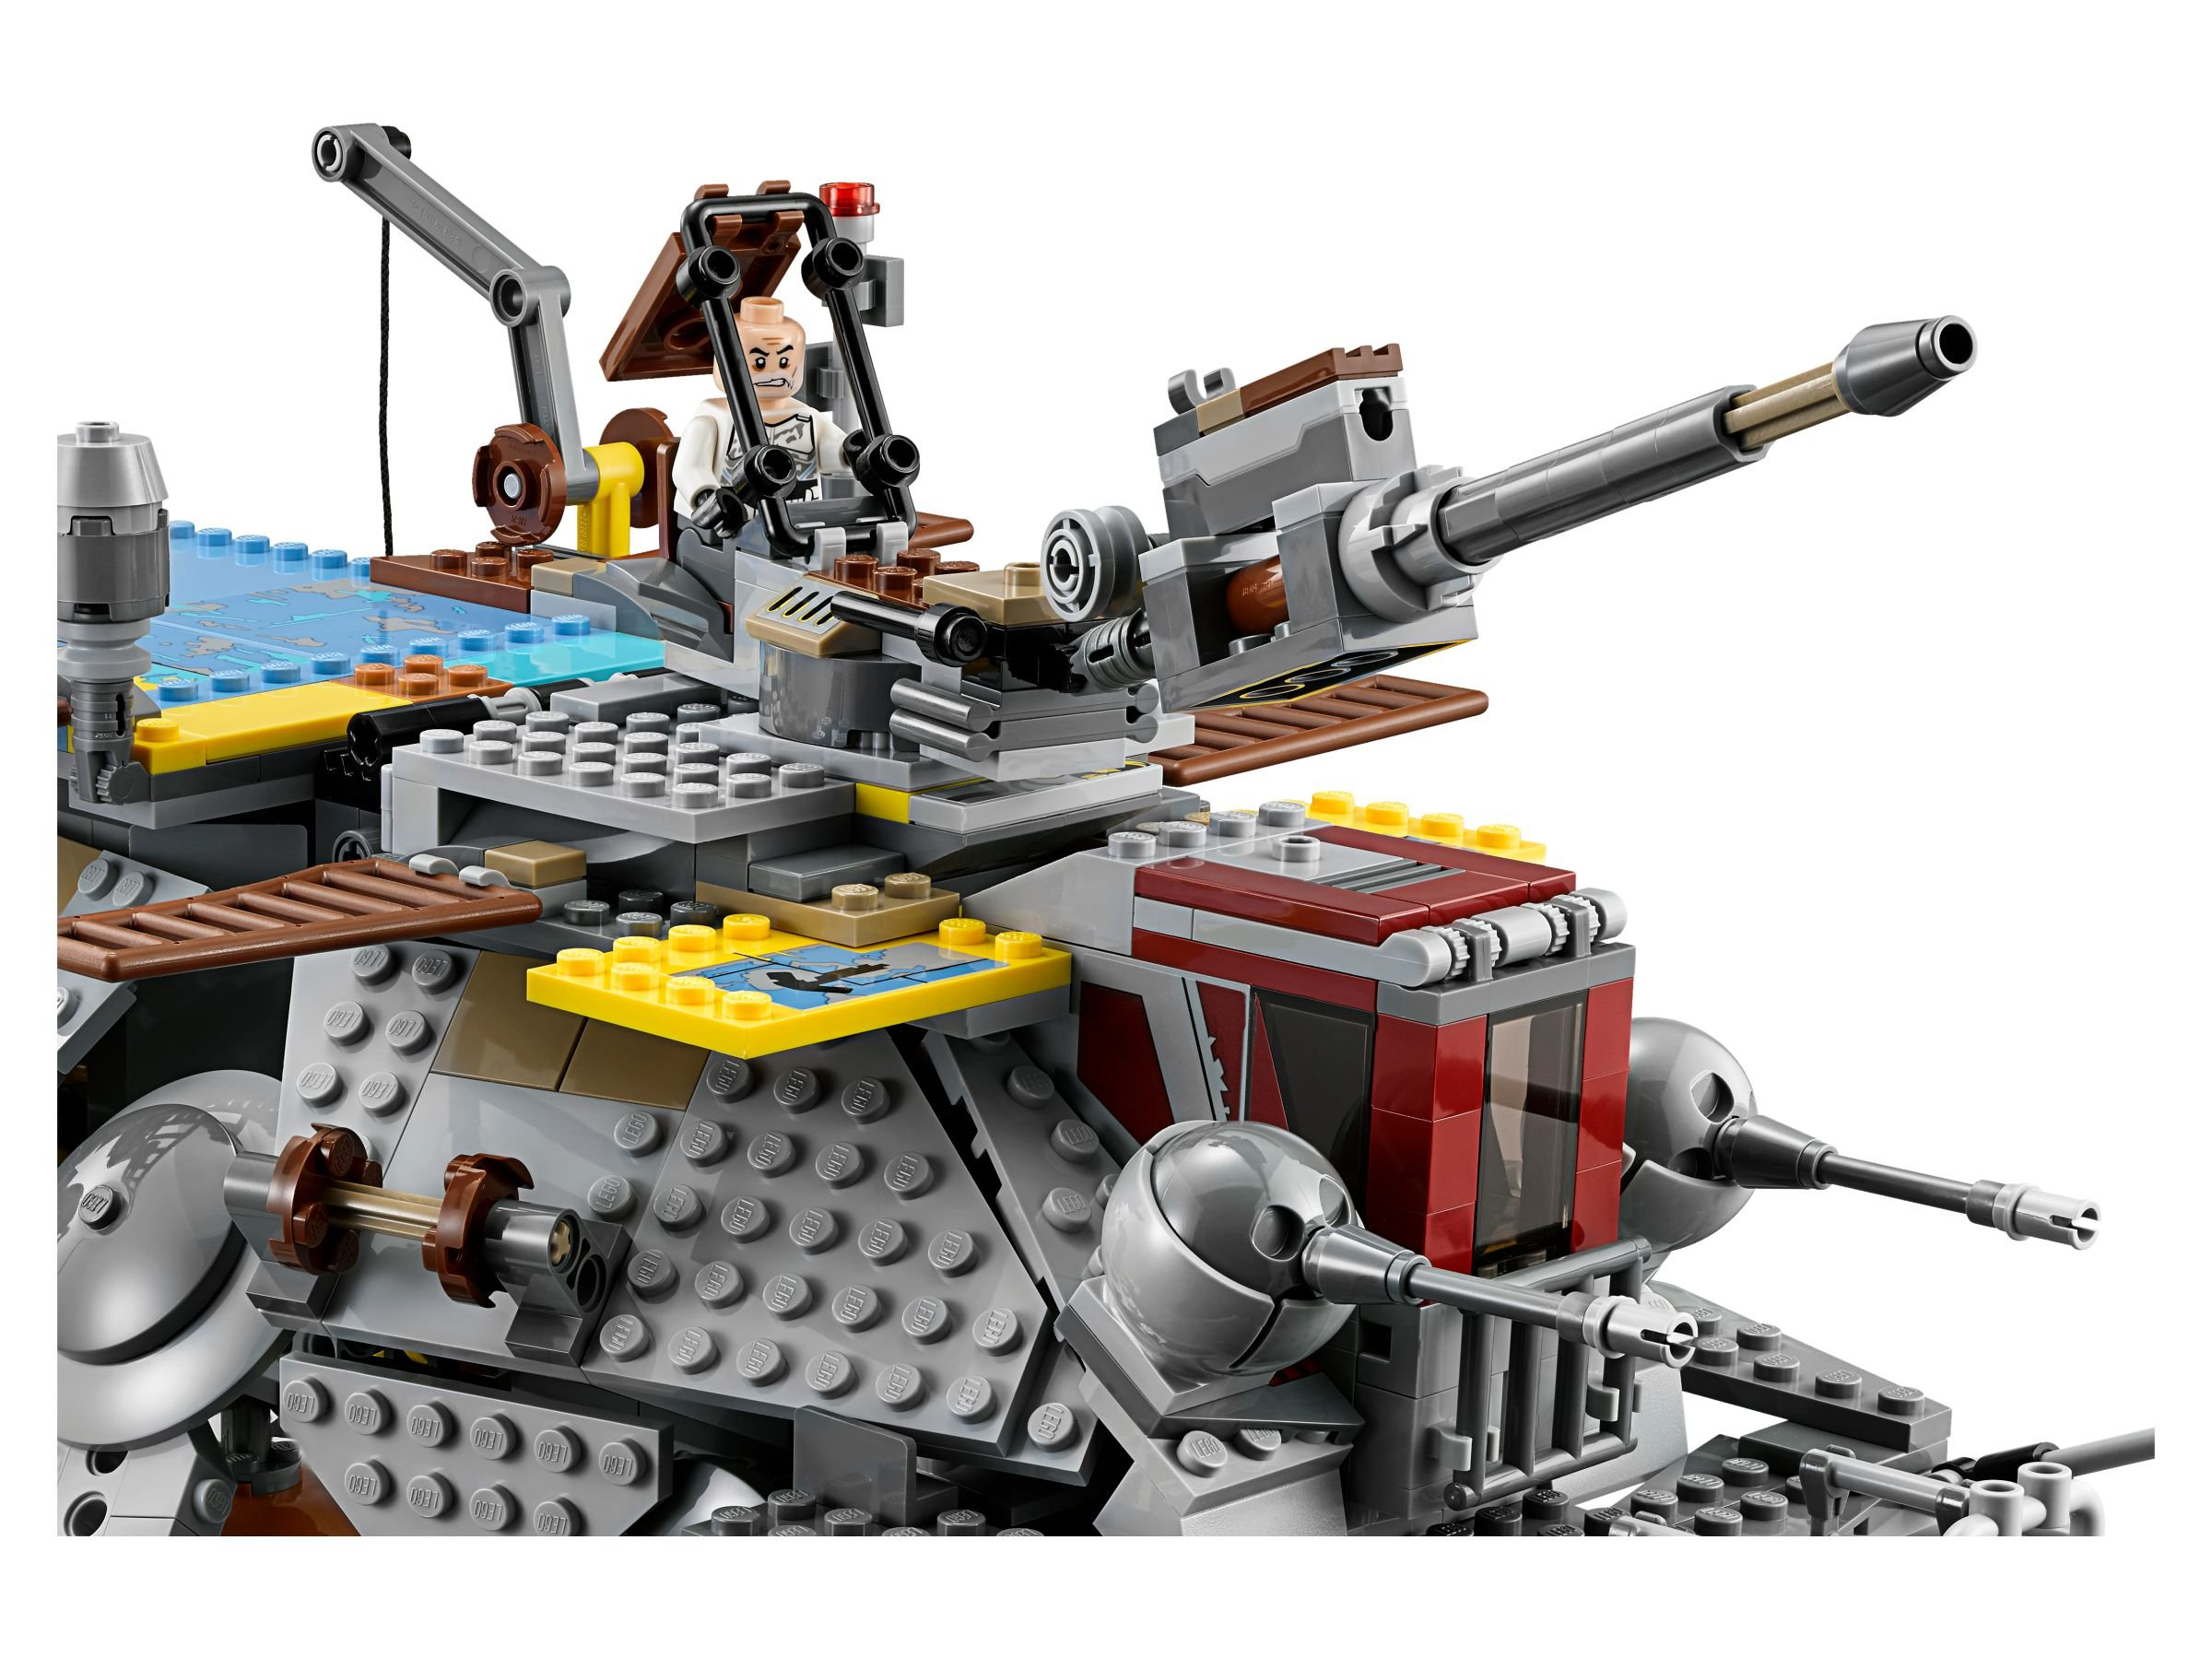 LEGO Star Wars 75157 Captain Rex's AT-TE™ LEGO_75157_alt9.jpg